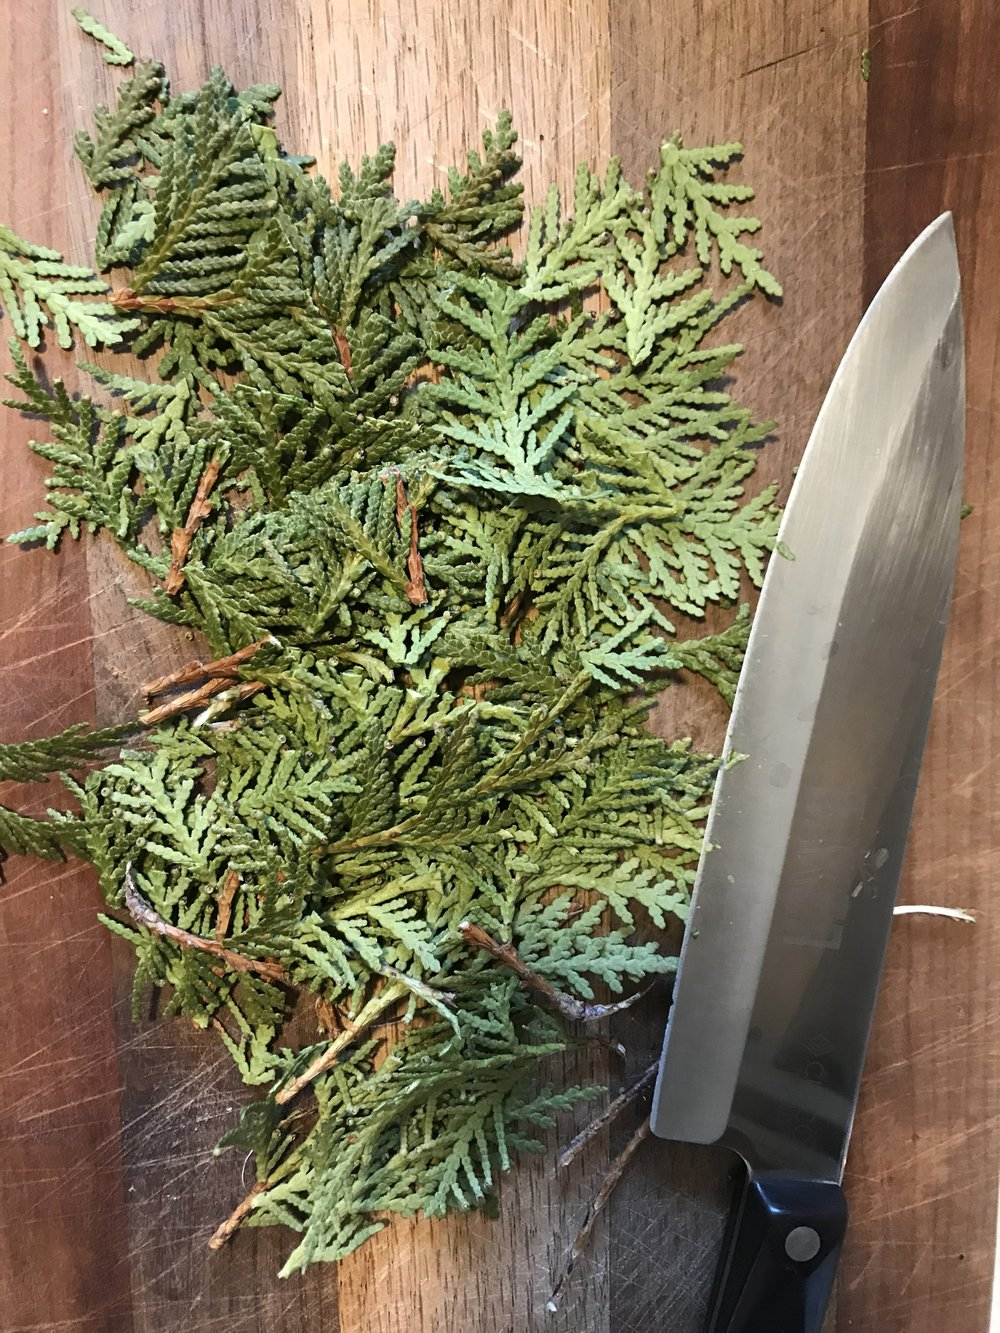 Chopped Cedar  - Nothing beats not having scurvy